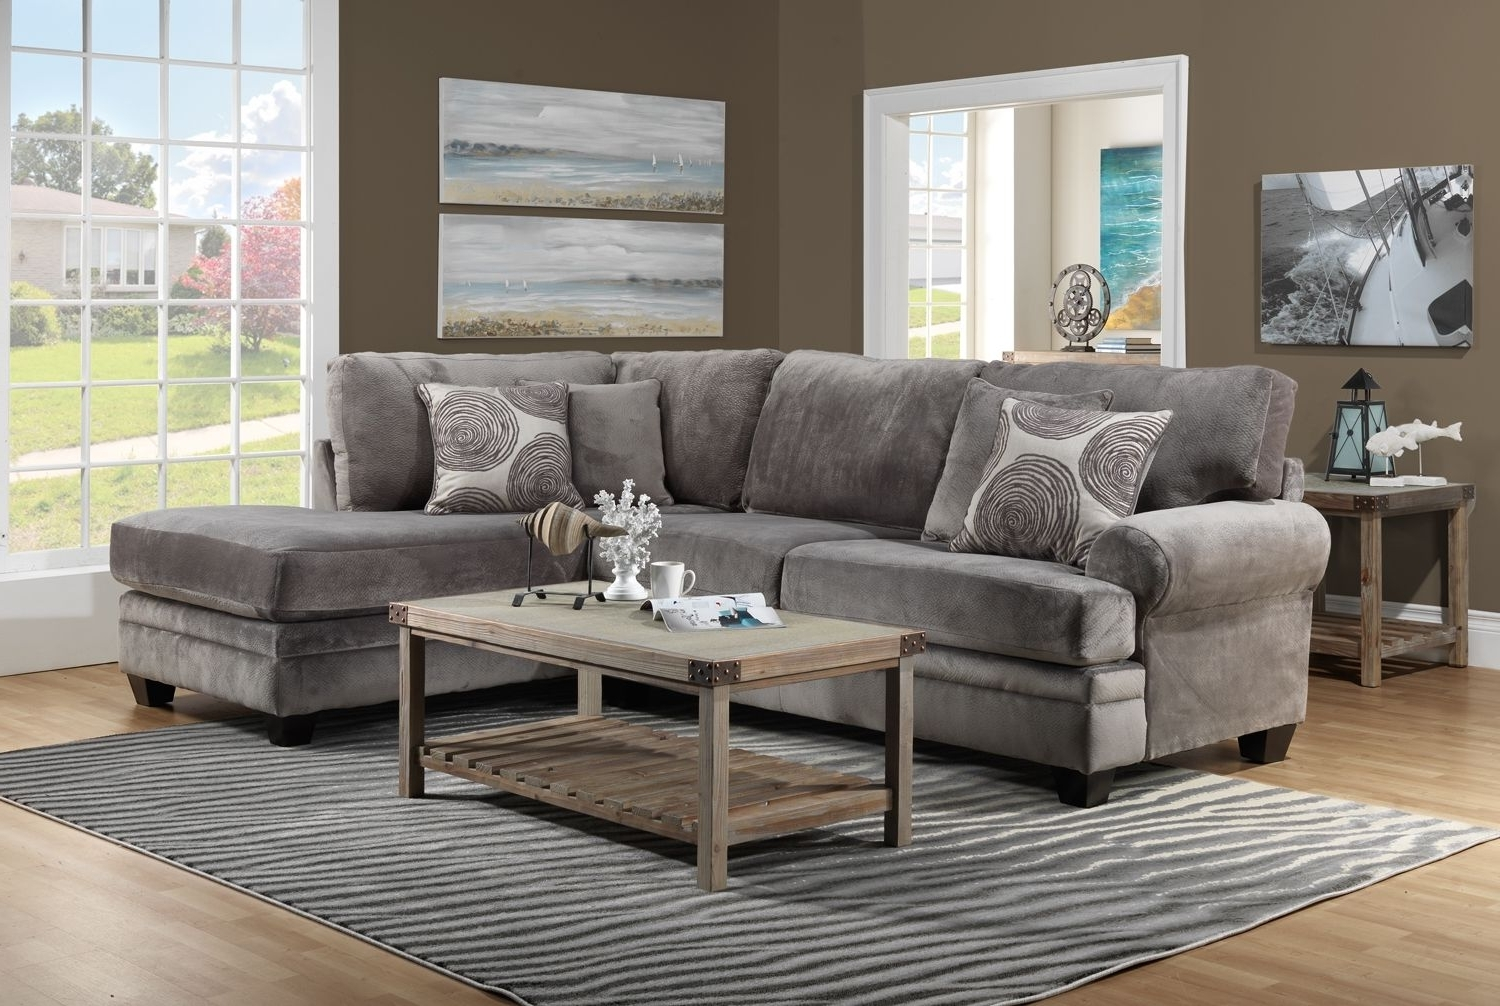 Fashionable Living Room Furniture The Lana Collection Lana 2 Pc (View 5 of 20)